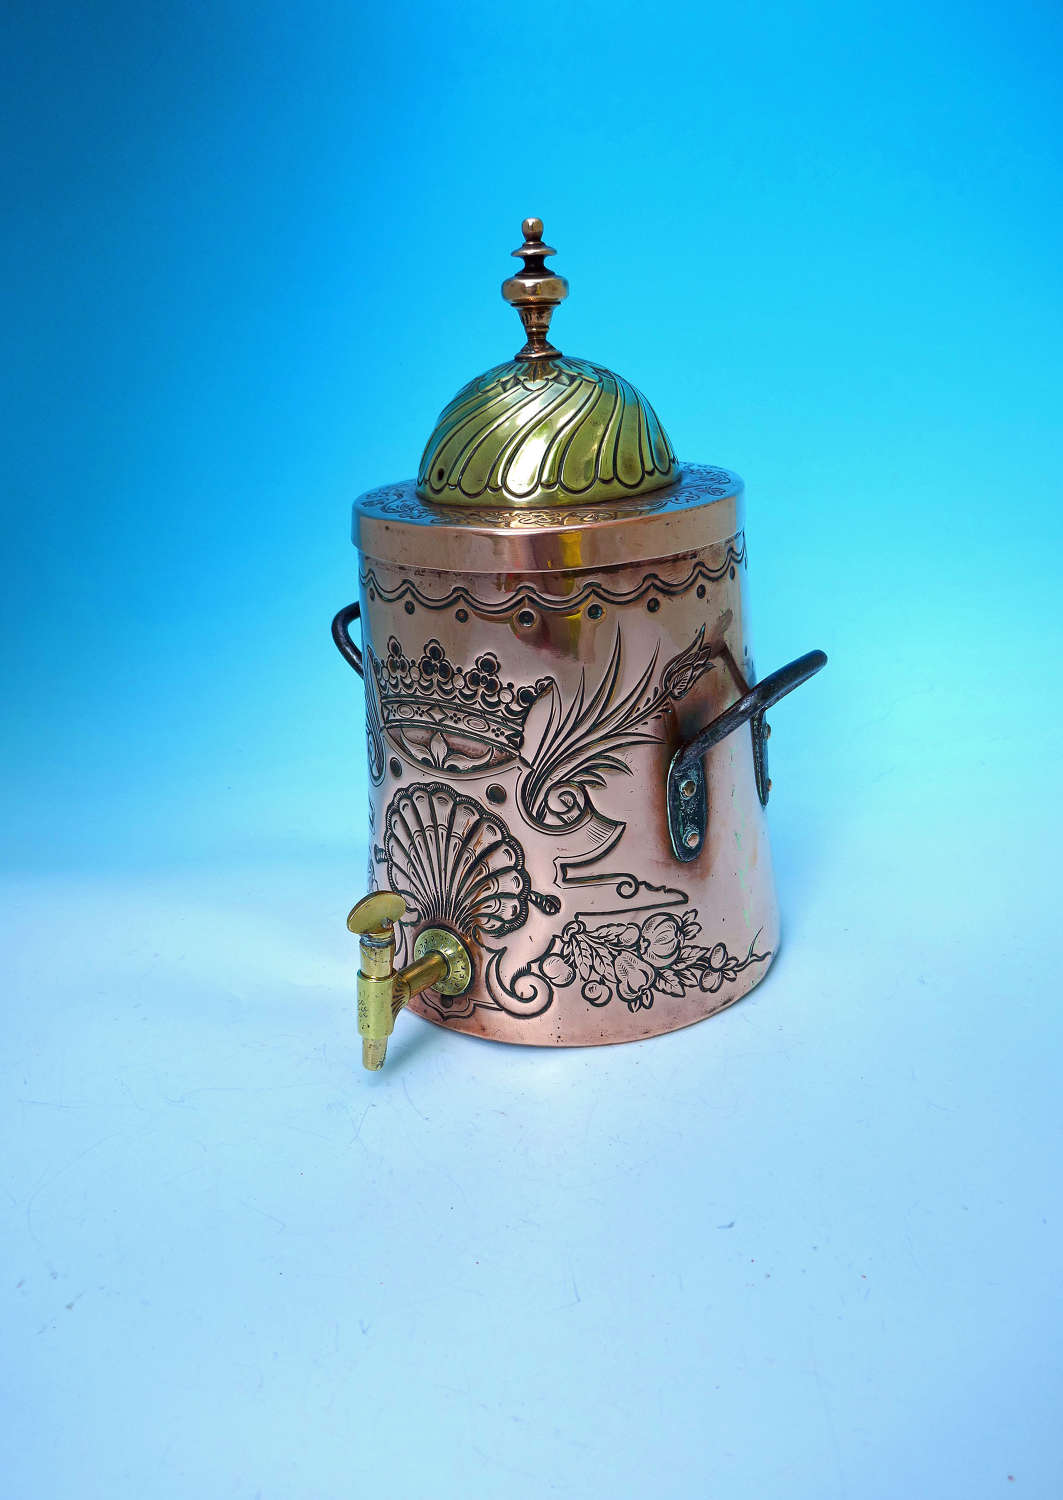 Superb 18thc Metalware Copper & Brass Repousse Decorated Water Urn.